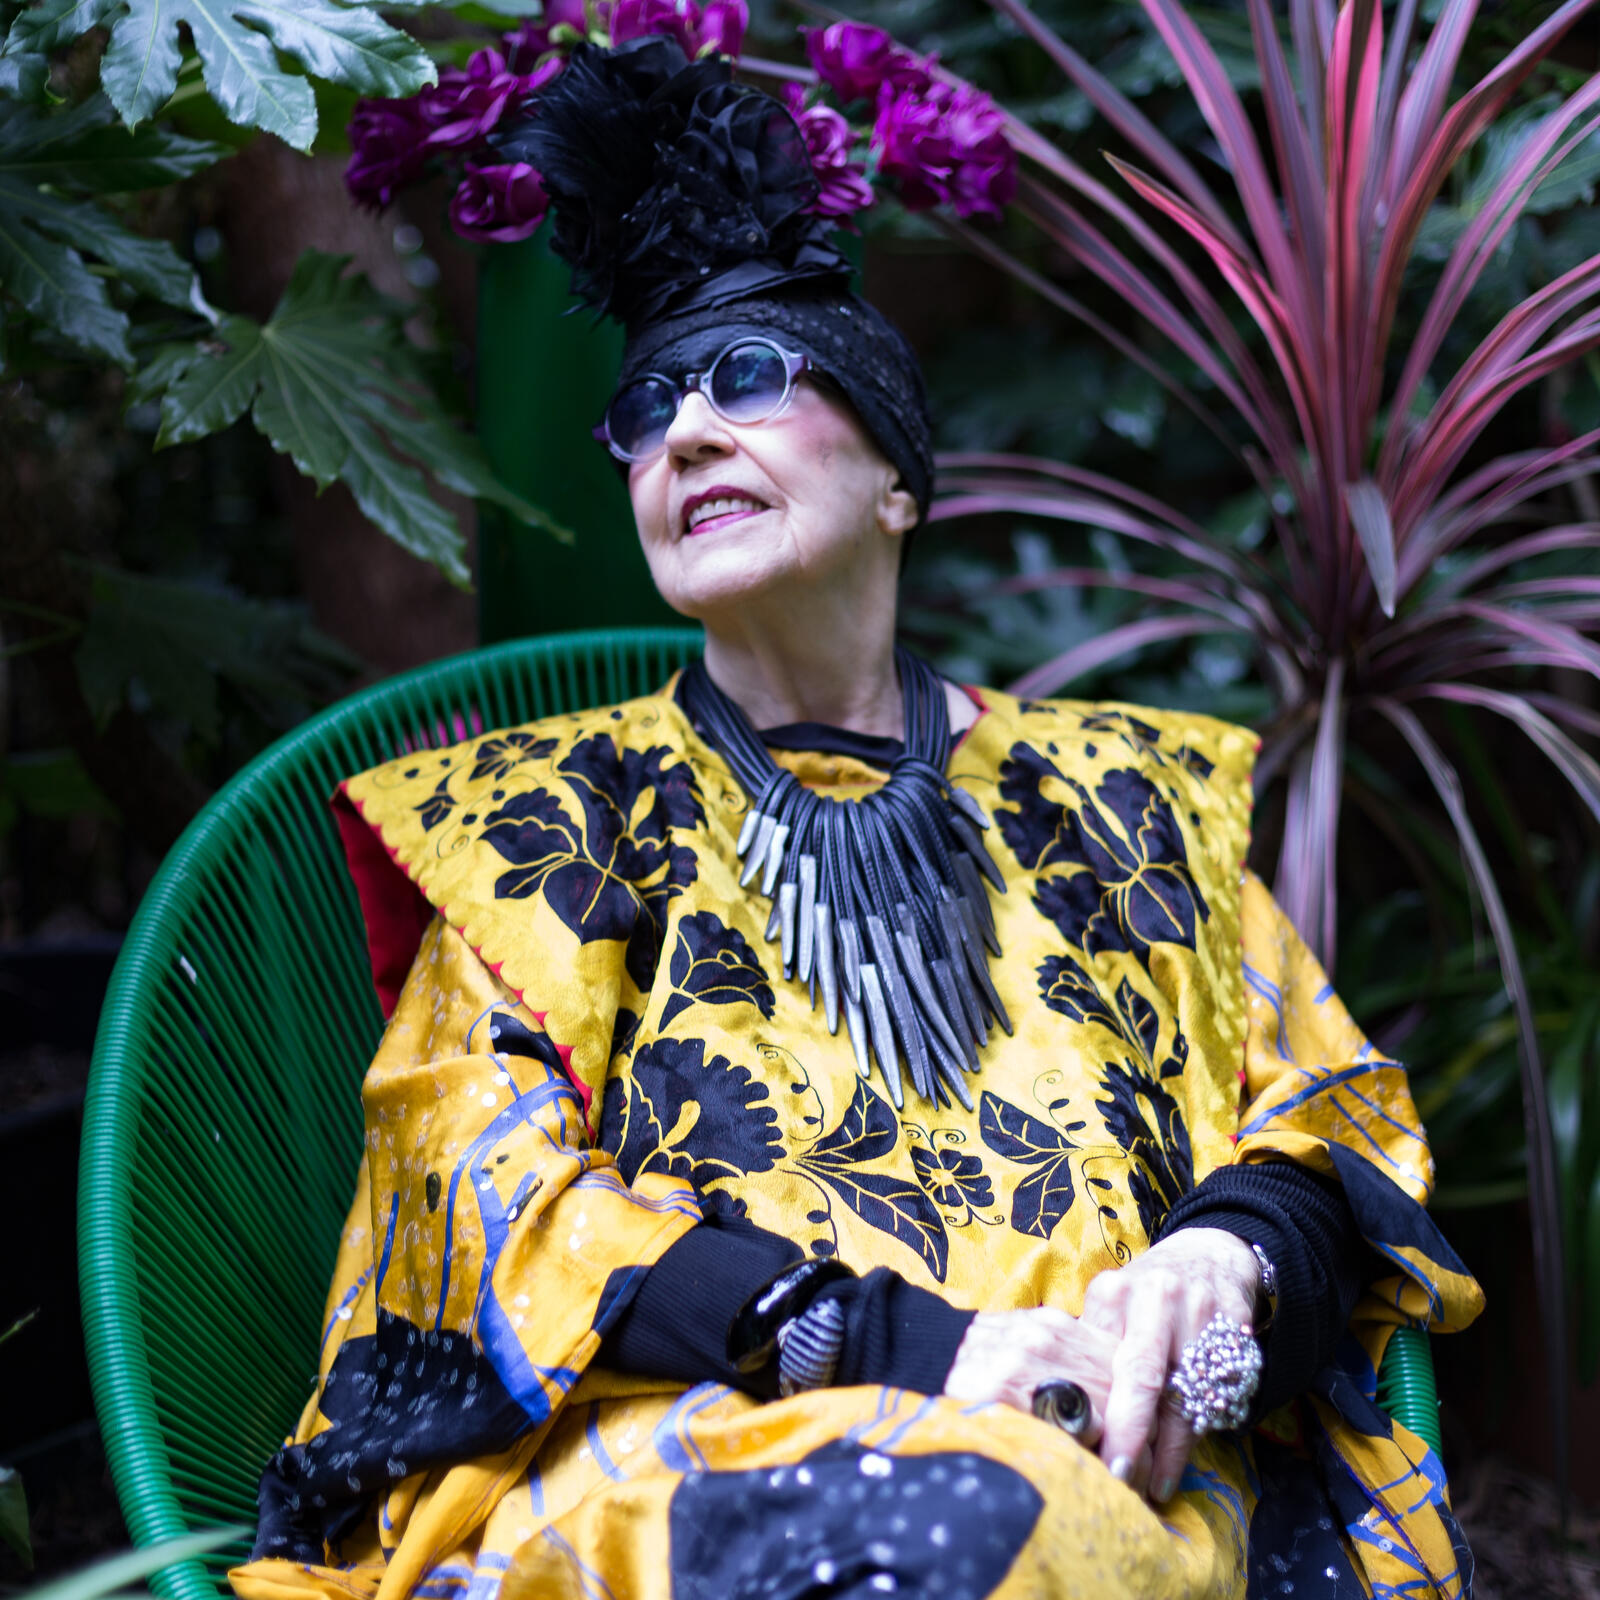 2: Molly Parkin: the grand dame of British bohemia on Soho's glory days, Louis Armstrong and self love